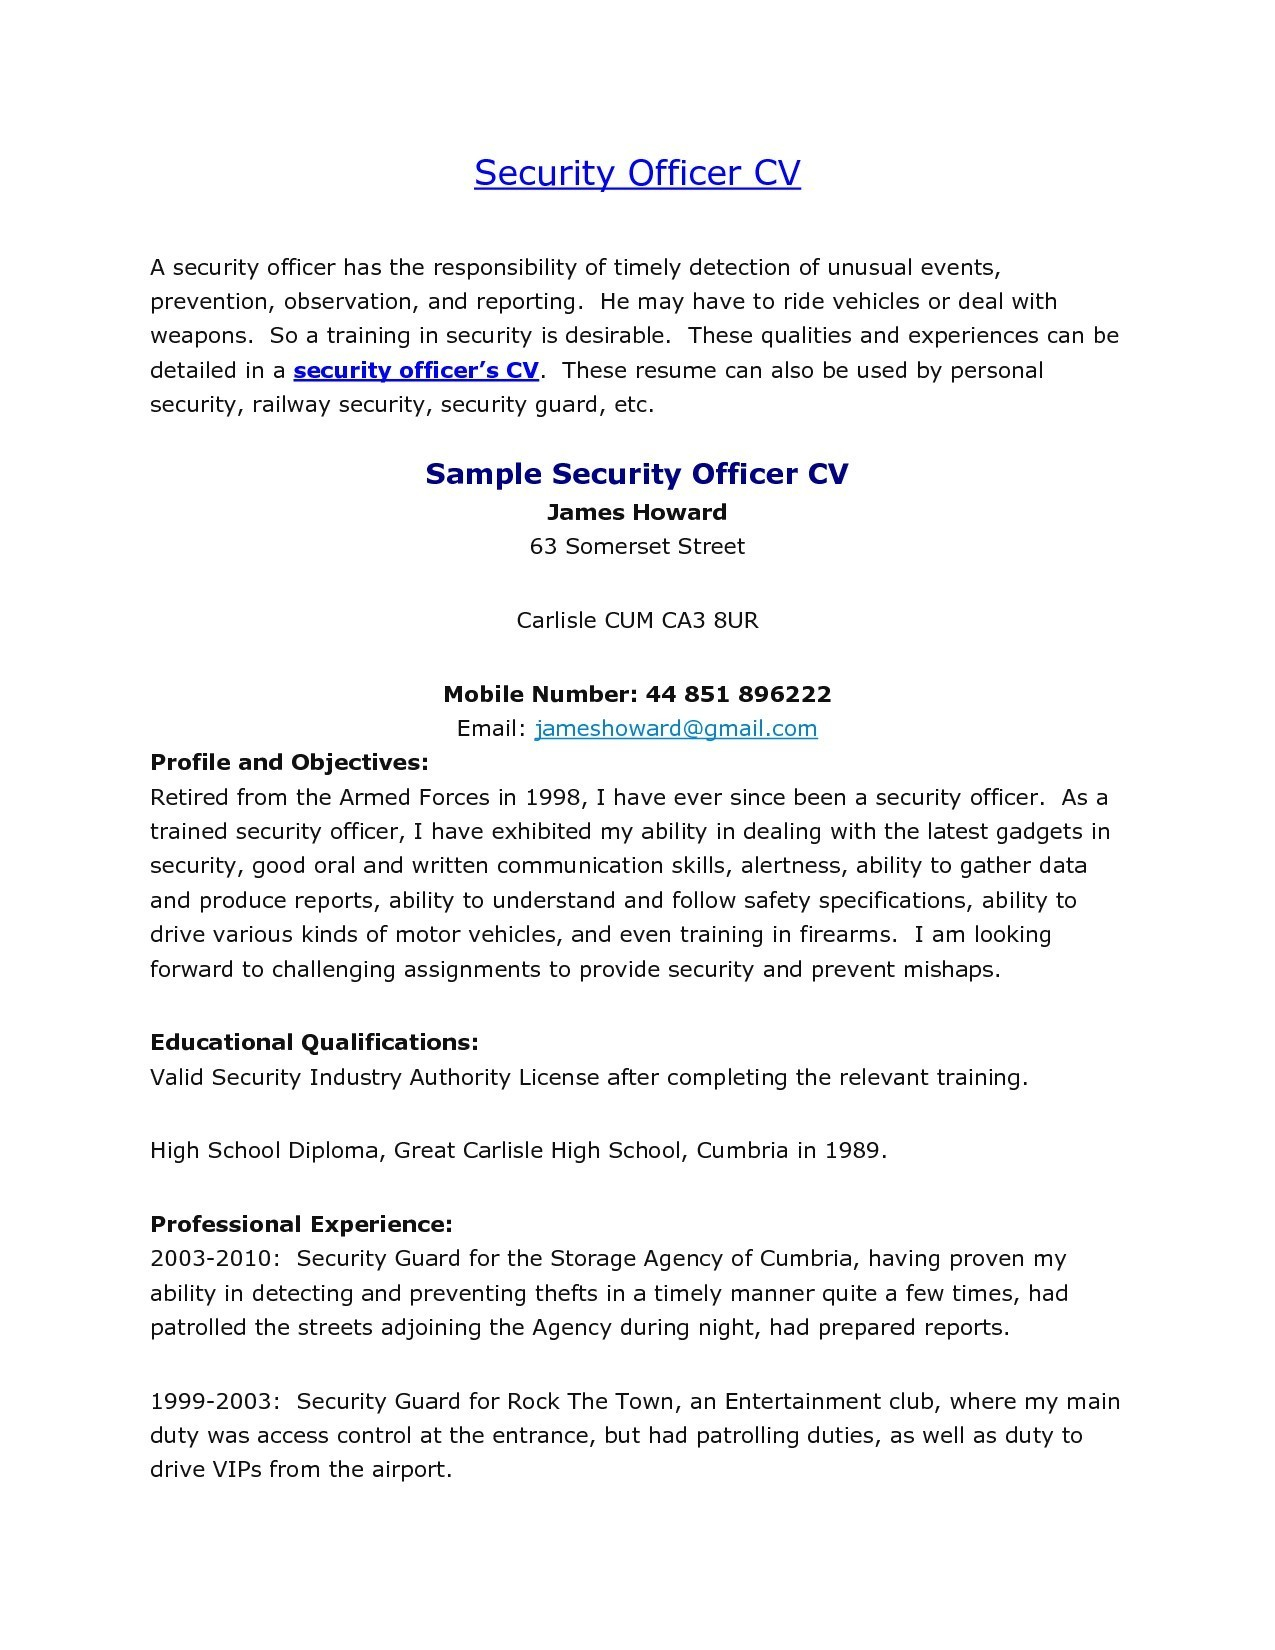 Security Guard Resume Skills - Sample Security Ficer Cover Letter New Security Guard Cover Letter